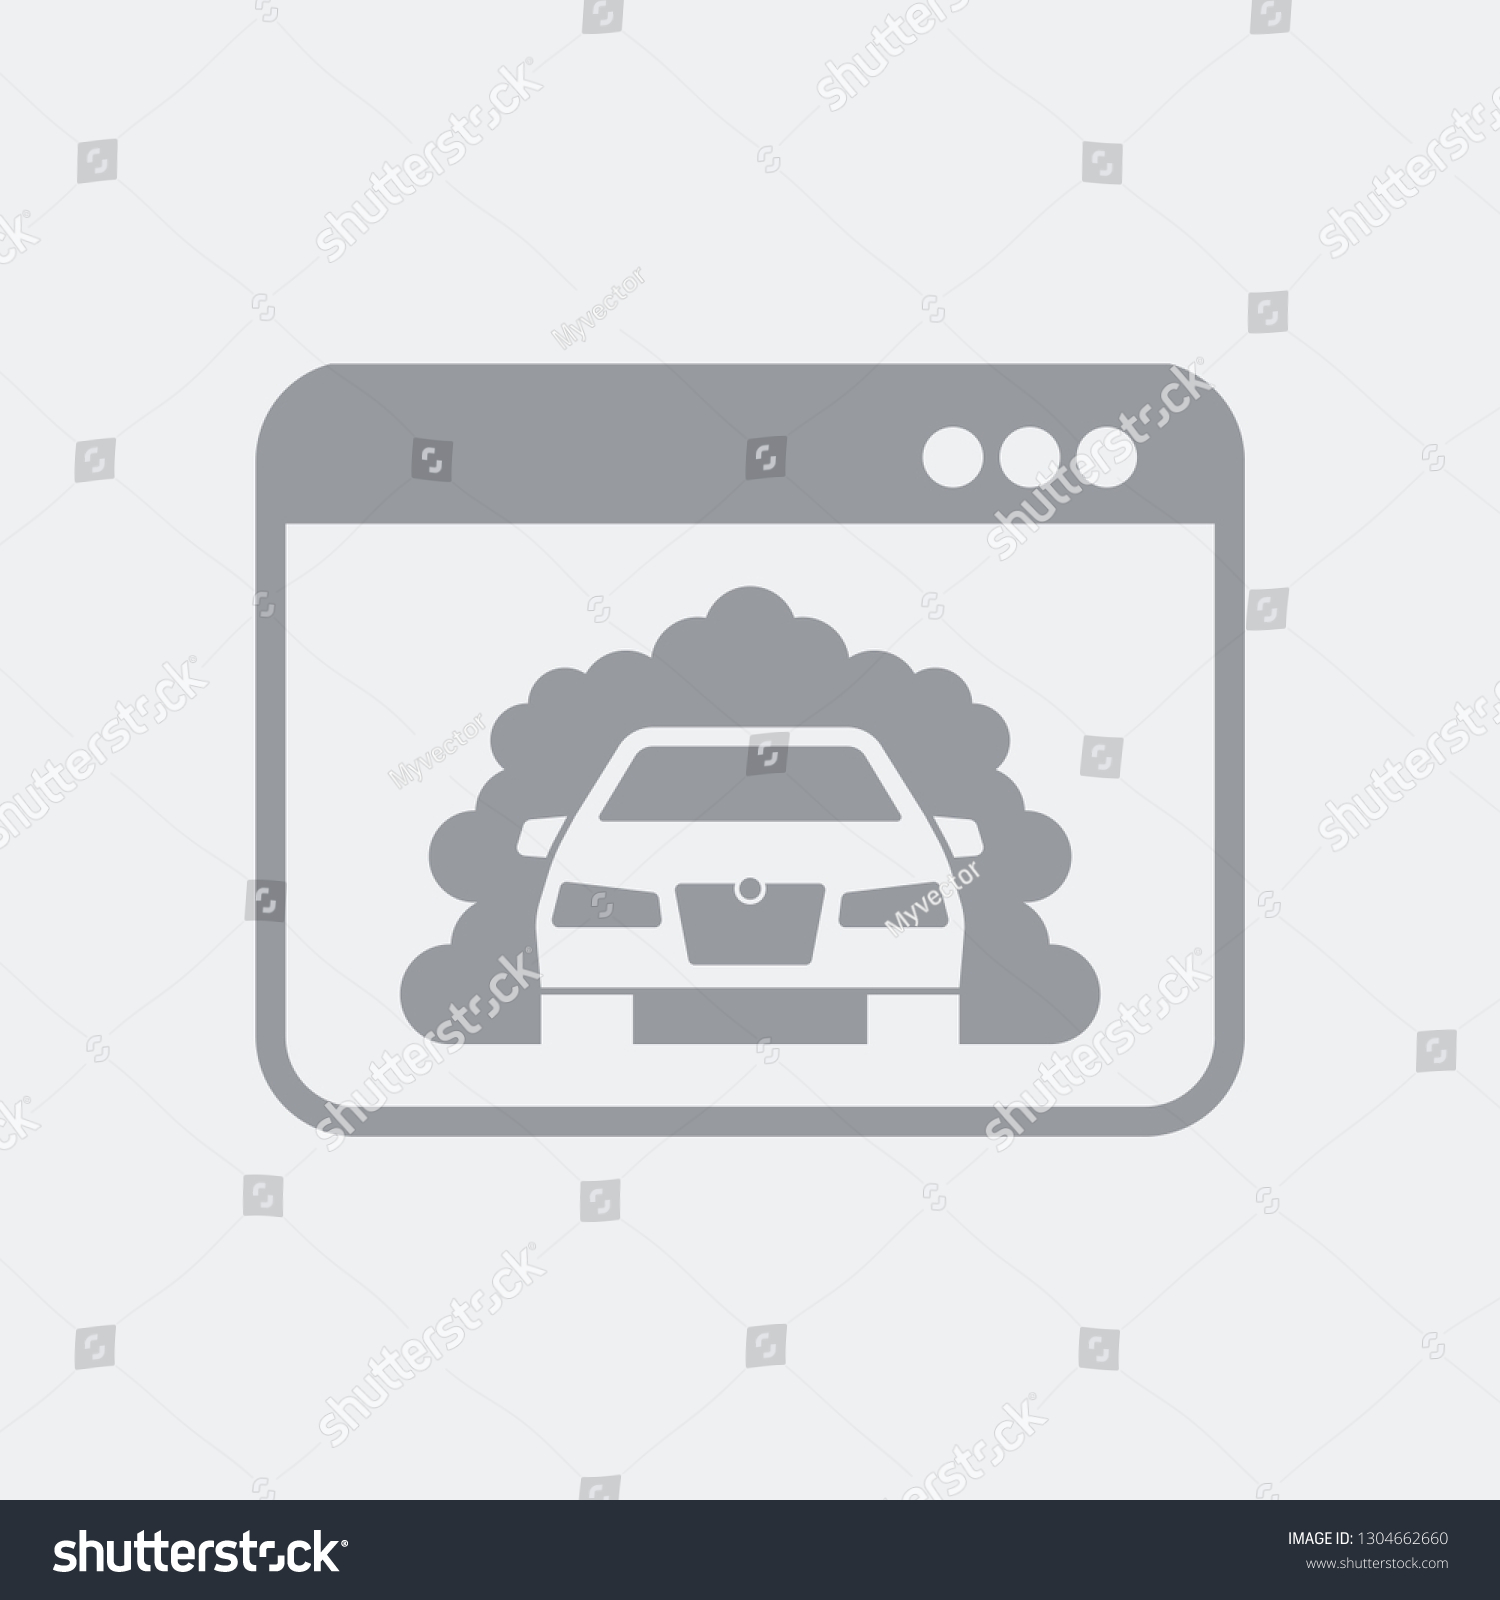 Software Car Emissions Test Flat Isolated Stock Vector (Royalty Free